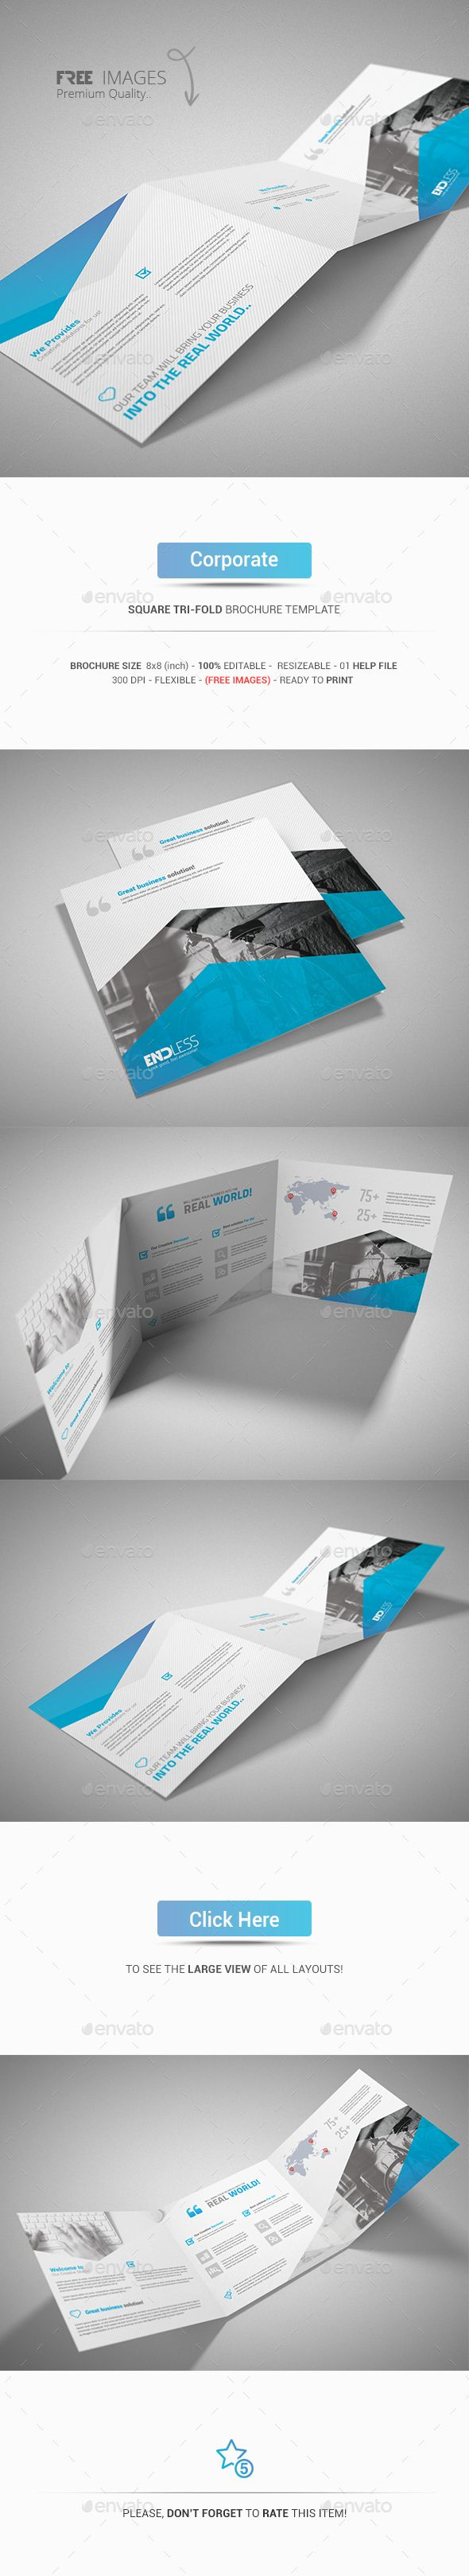 Square TriFold Brochure  Corporate — Photoshop PSD #tri-fold #creative • Available here → https://graphicriver.net/item/square-trifold-brochure-corporate/13577642?ref=pxcr